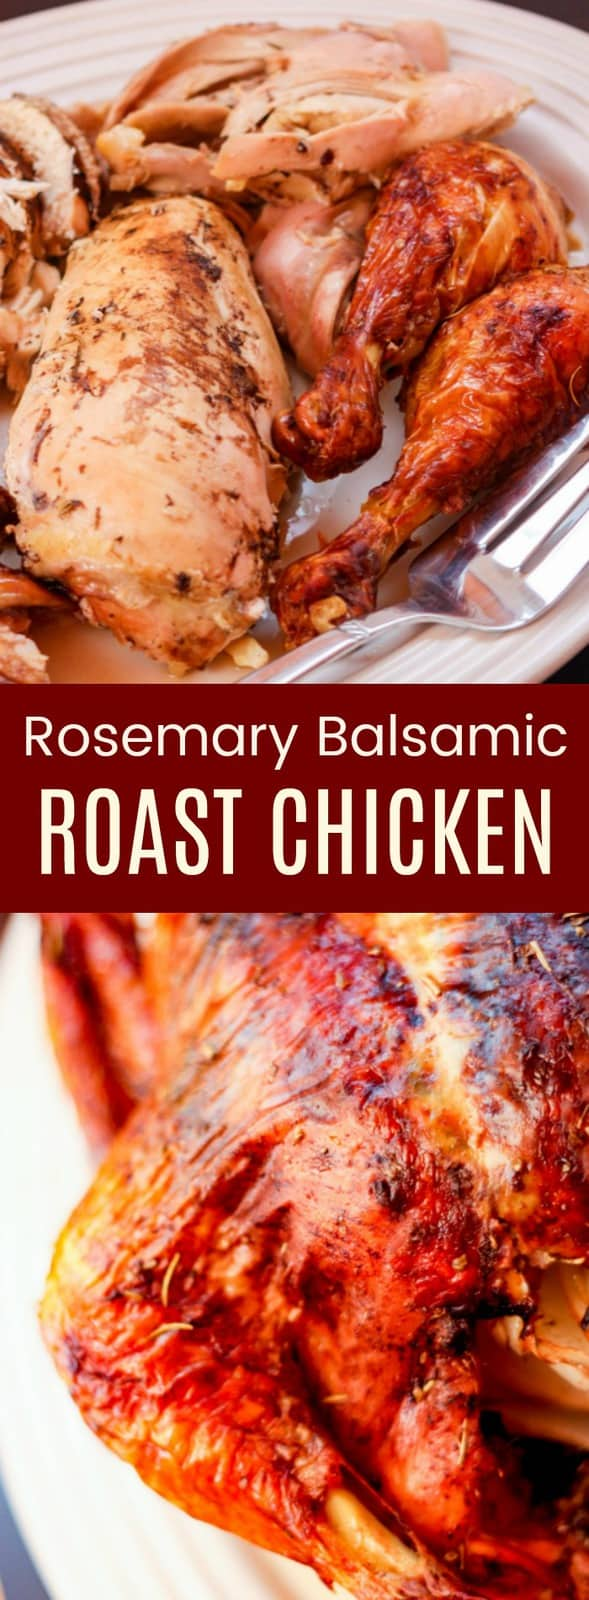 Rosemary Balsamic Chicken Recipe from Cupcakes and Kale Chips